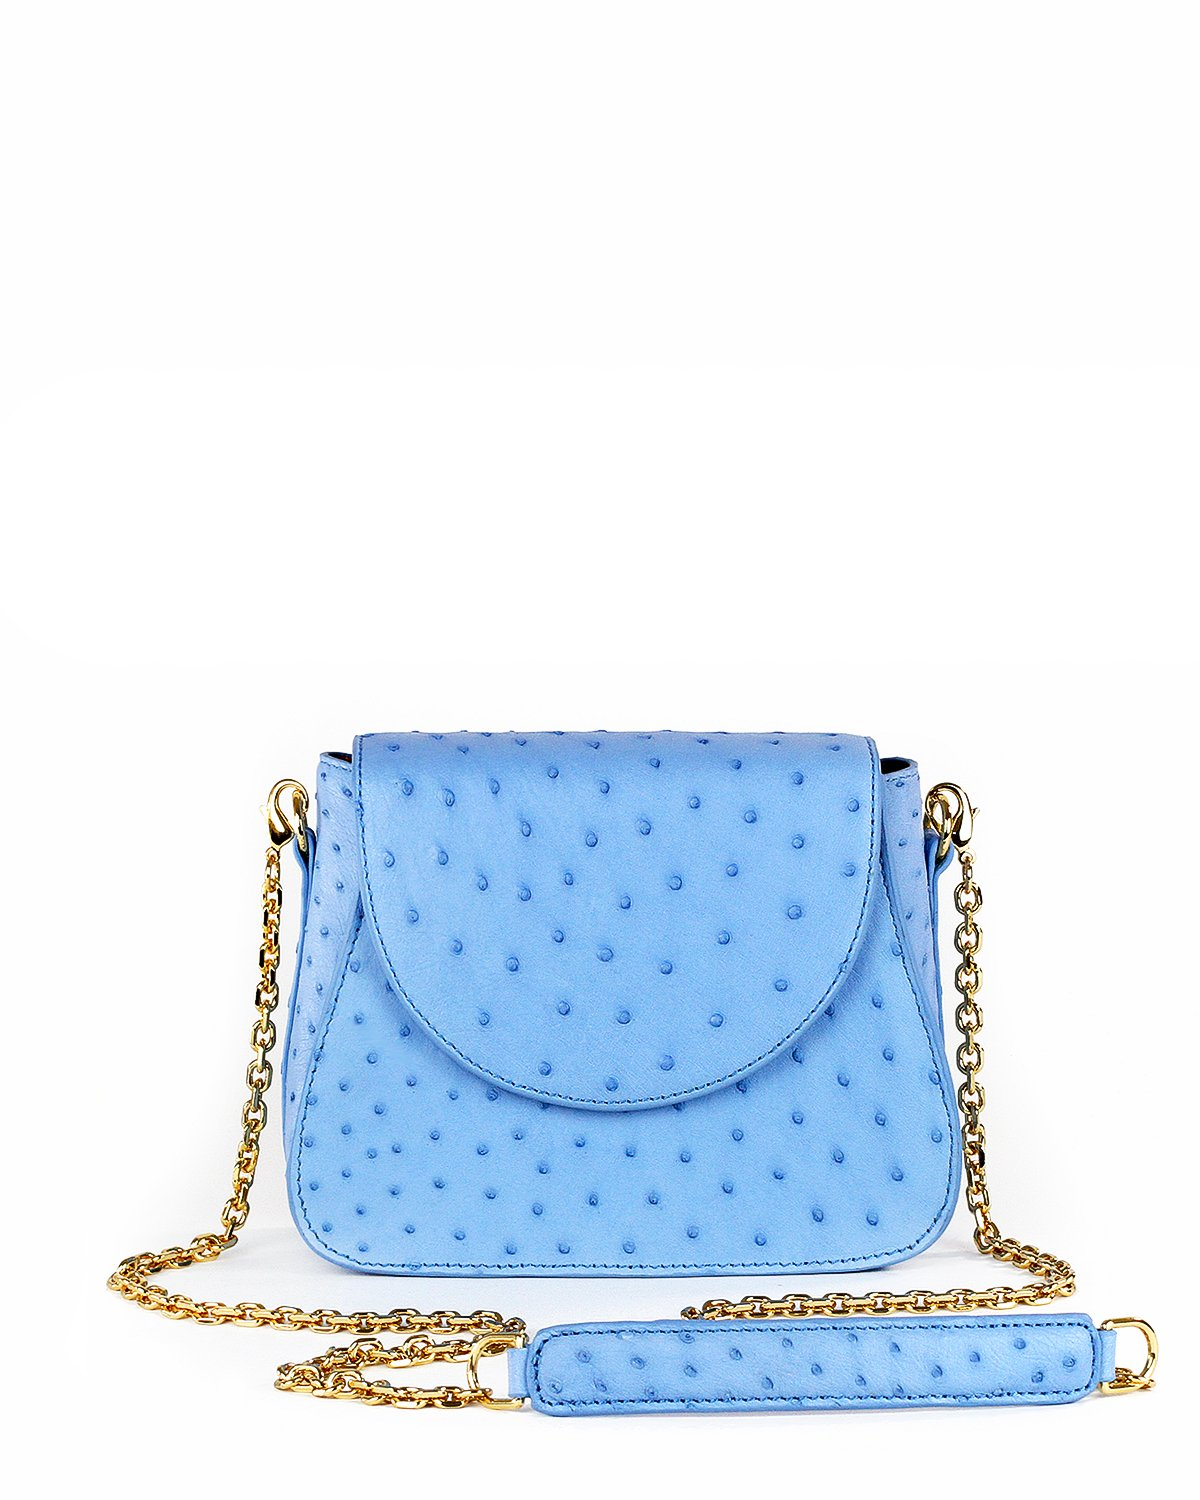 Light Cool Sky Blue Ostrich Genuine Sustainable Crossbody Handbag Yara Bashoor Front Image Gold Long Chain Padded Shoulder Piece